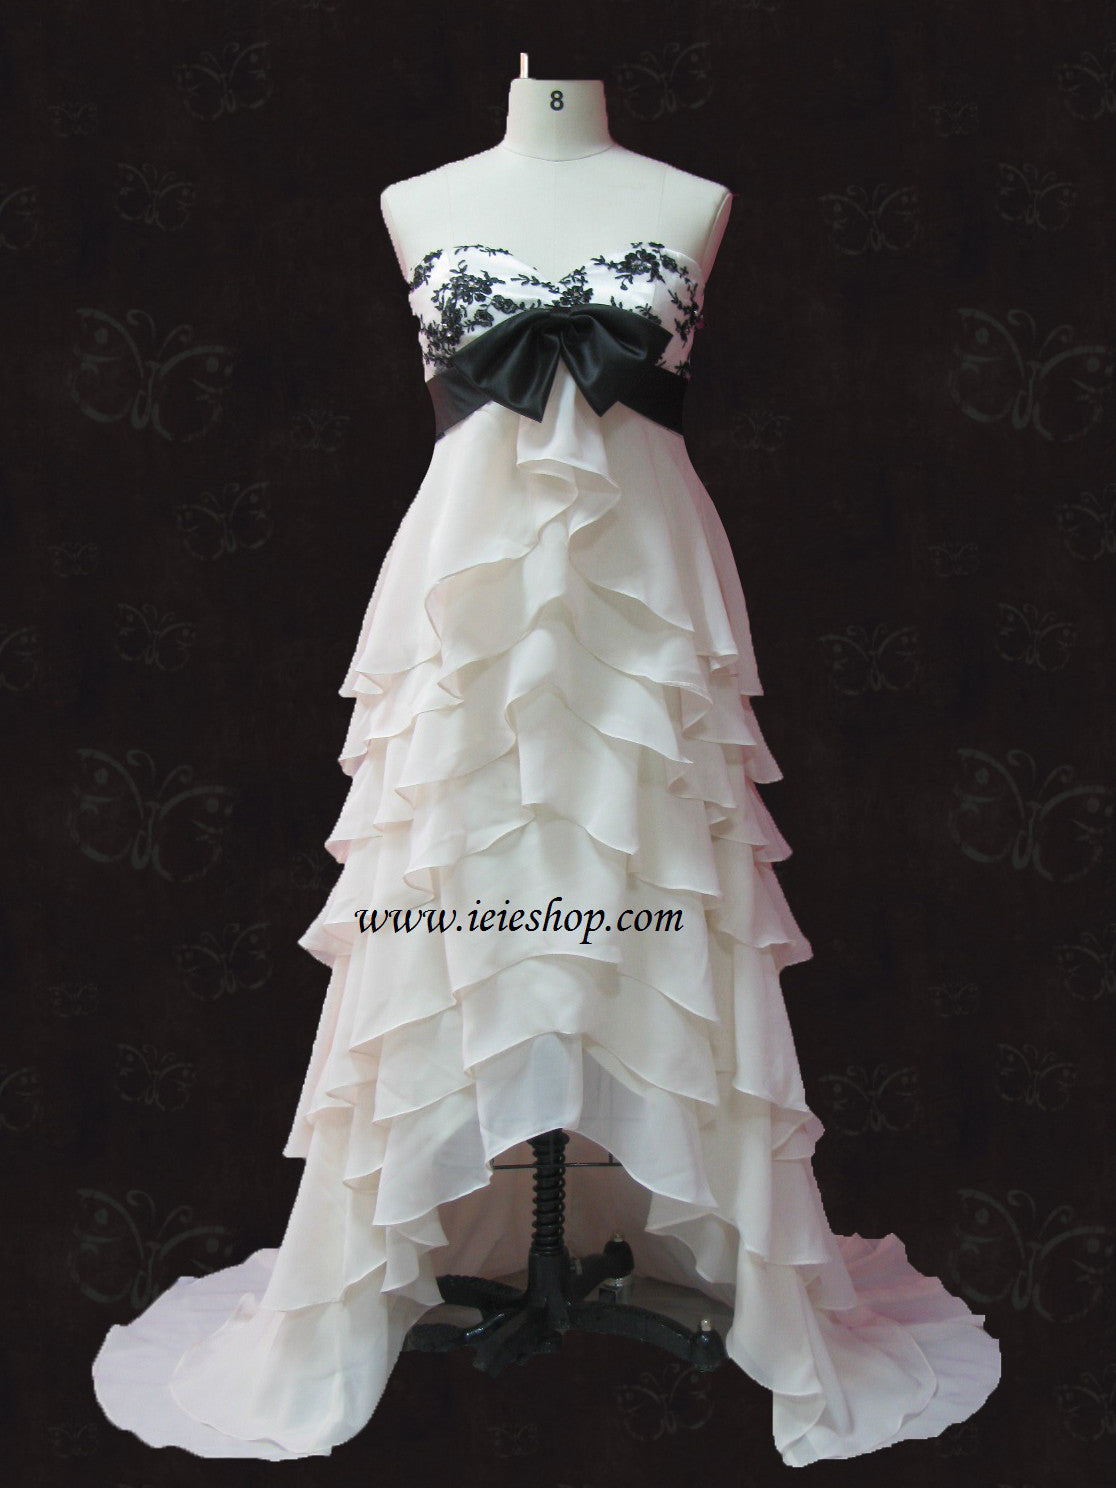 Strapless Black and White Tiered Evening Gown